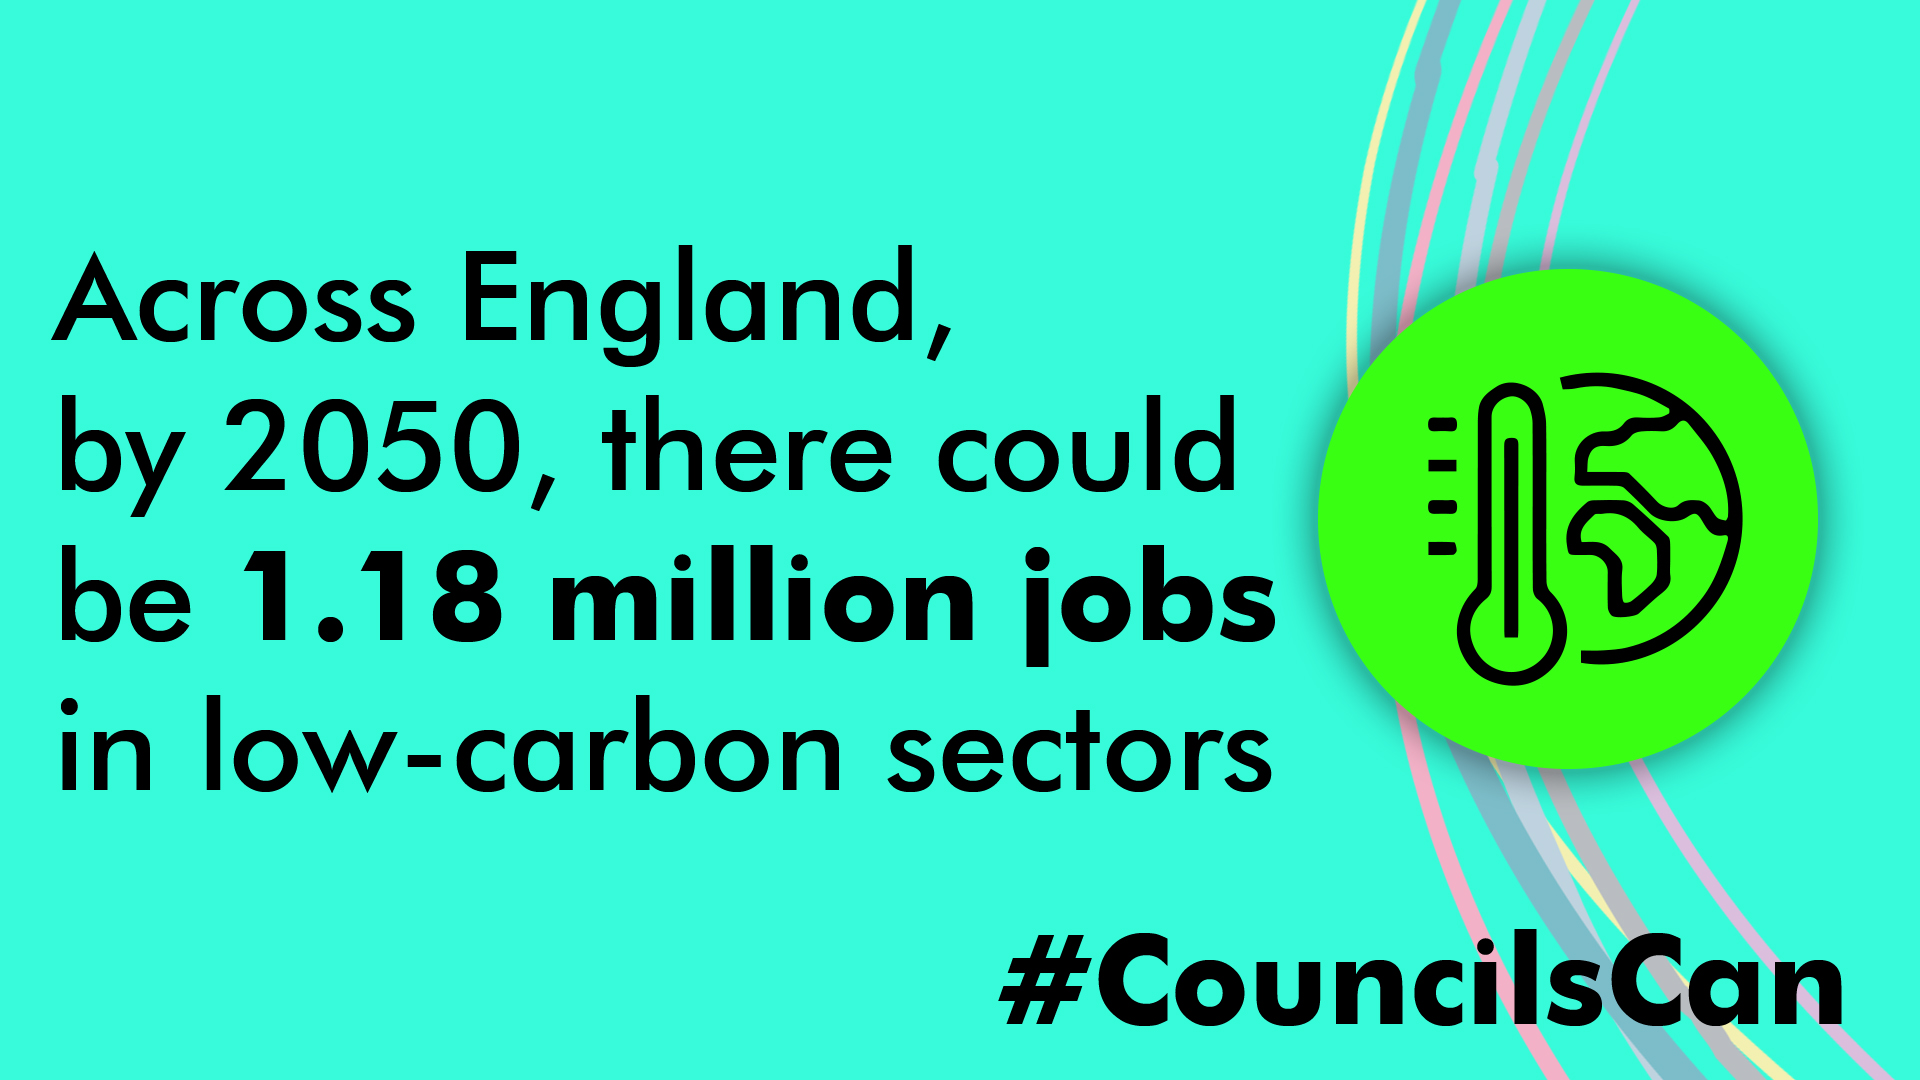 Accross England, by 2050 there could be 1.18 million jobs in low carbon sectors #CouncilsCan